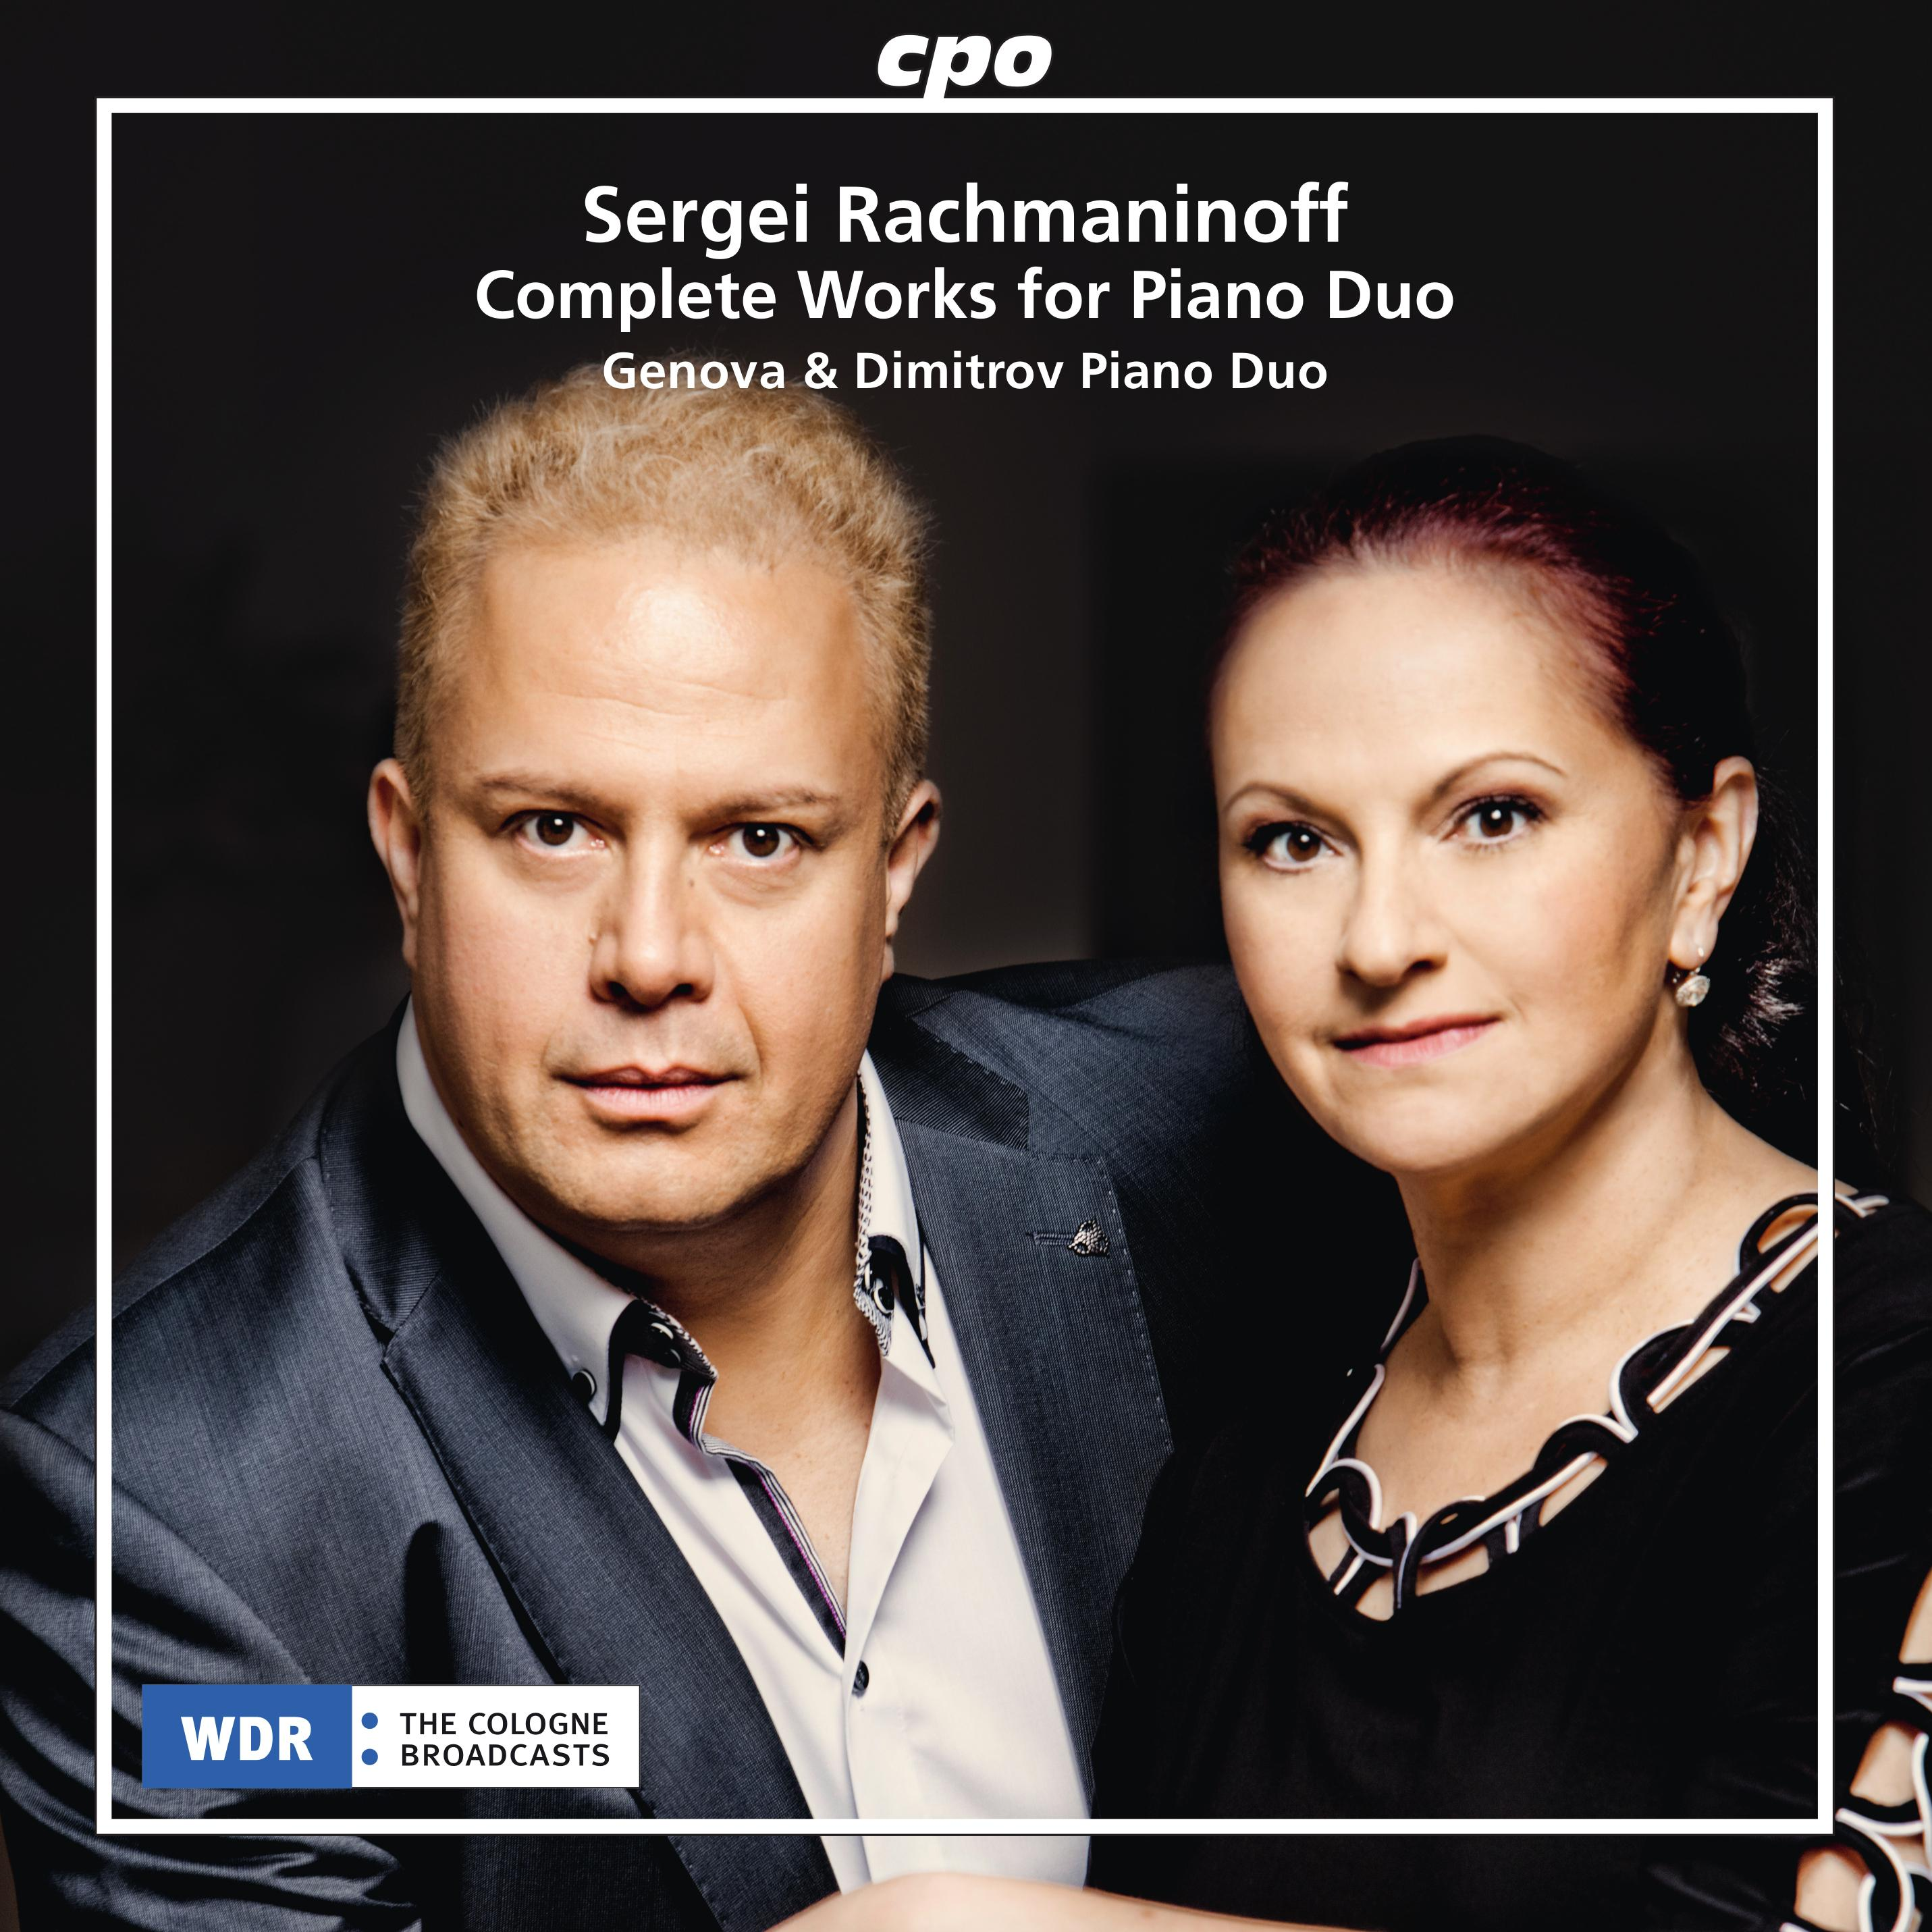 Sergei Rachmaninoff • Complete Works for Piano Duo (cpo 555 326-2) // Cover